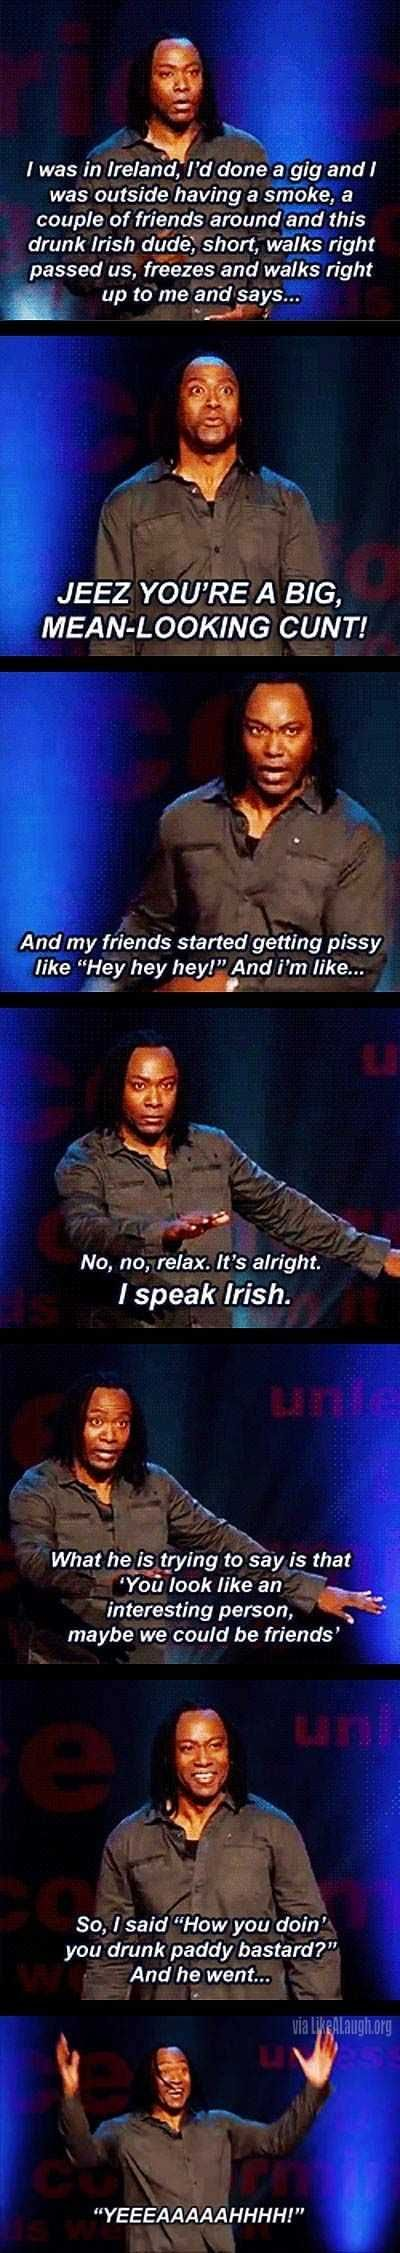 How to speak Irish......I now want to go to Ireland do the women get to speak like this too lol